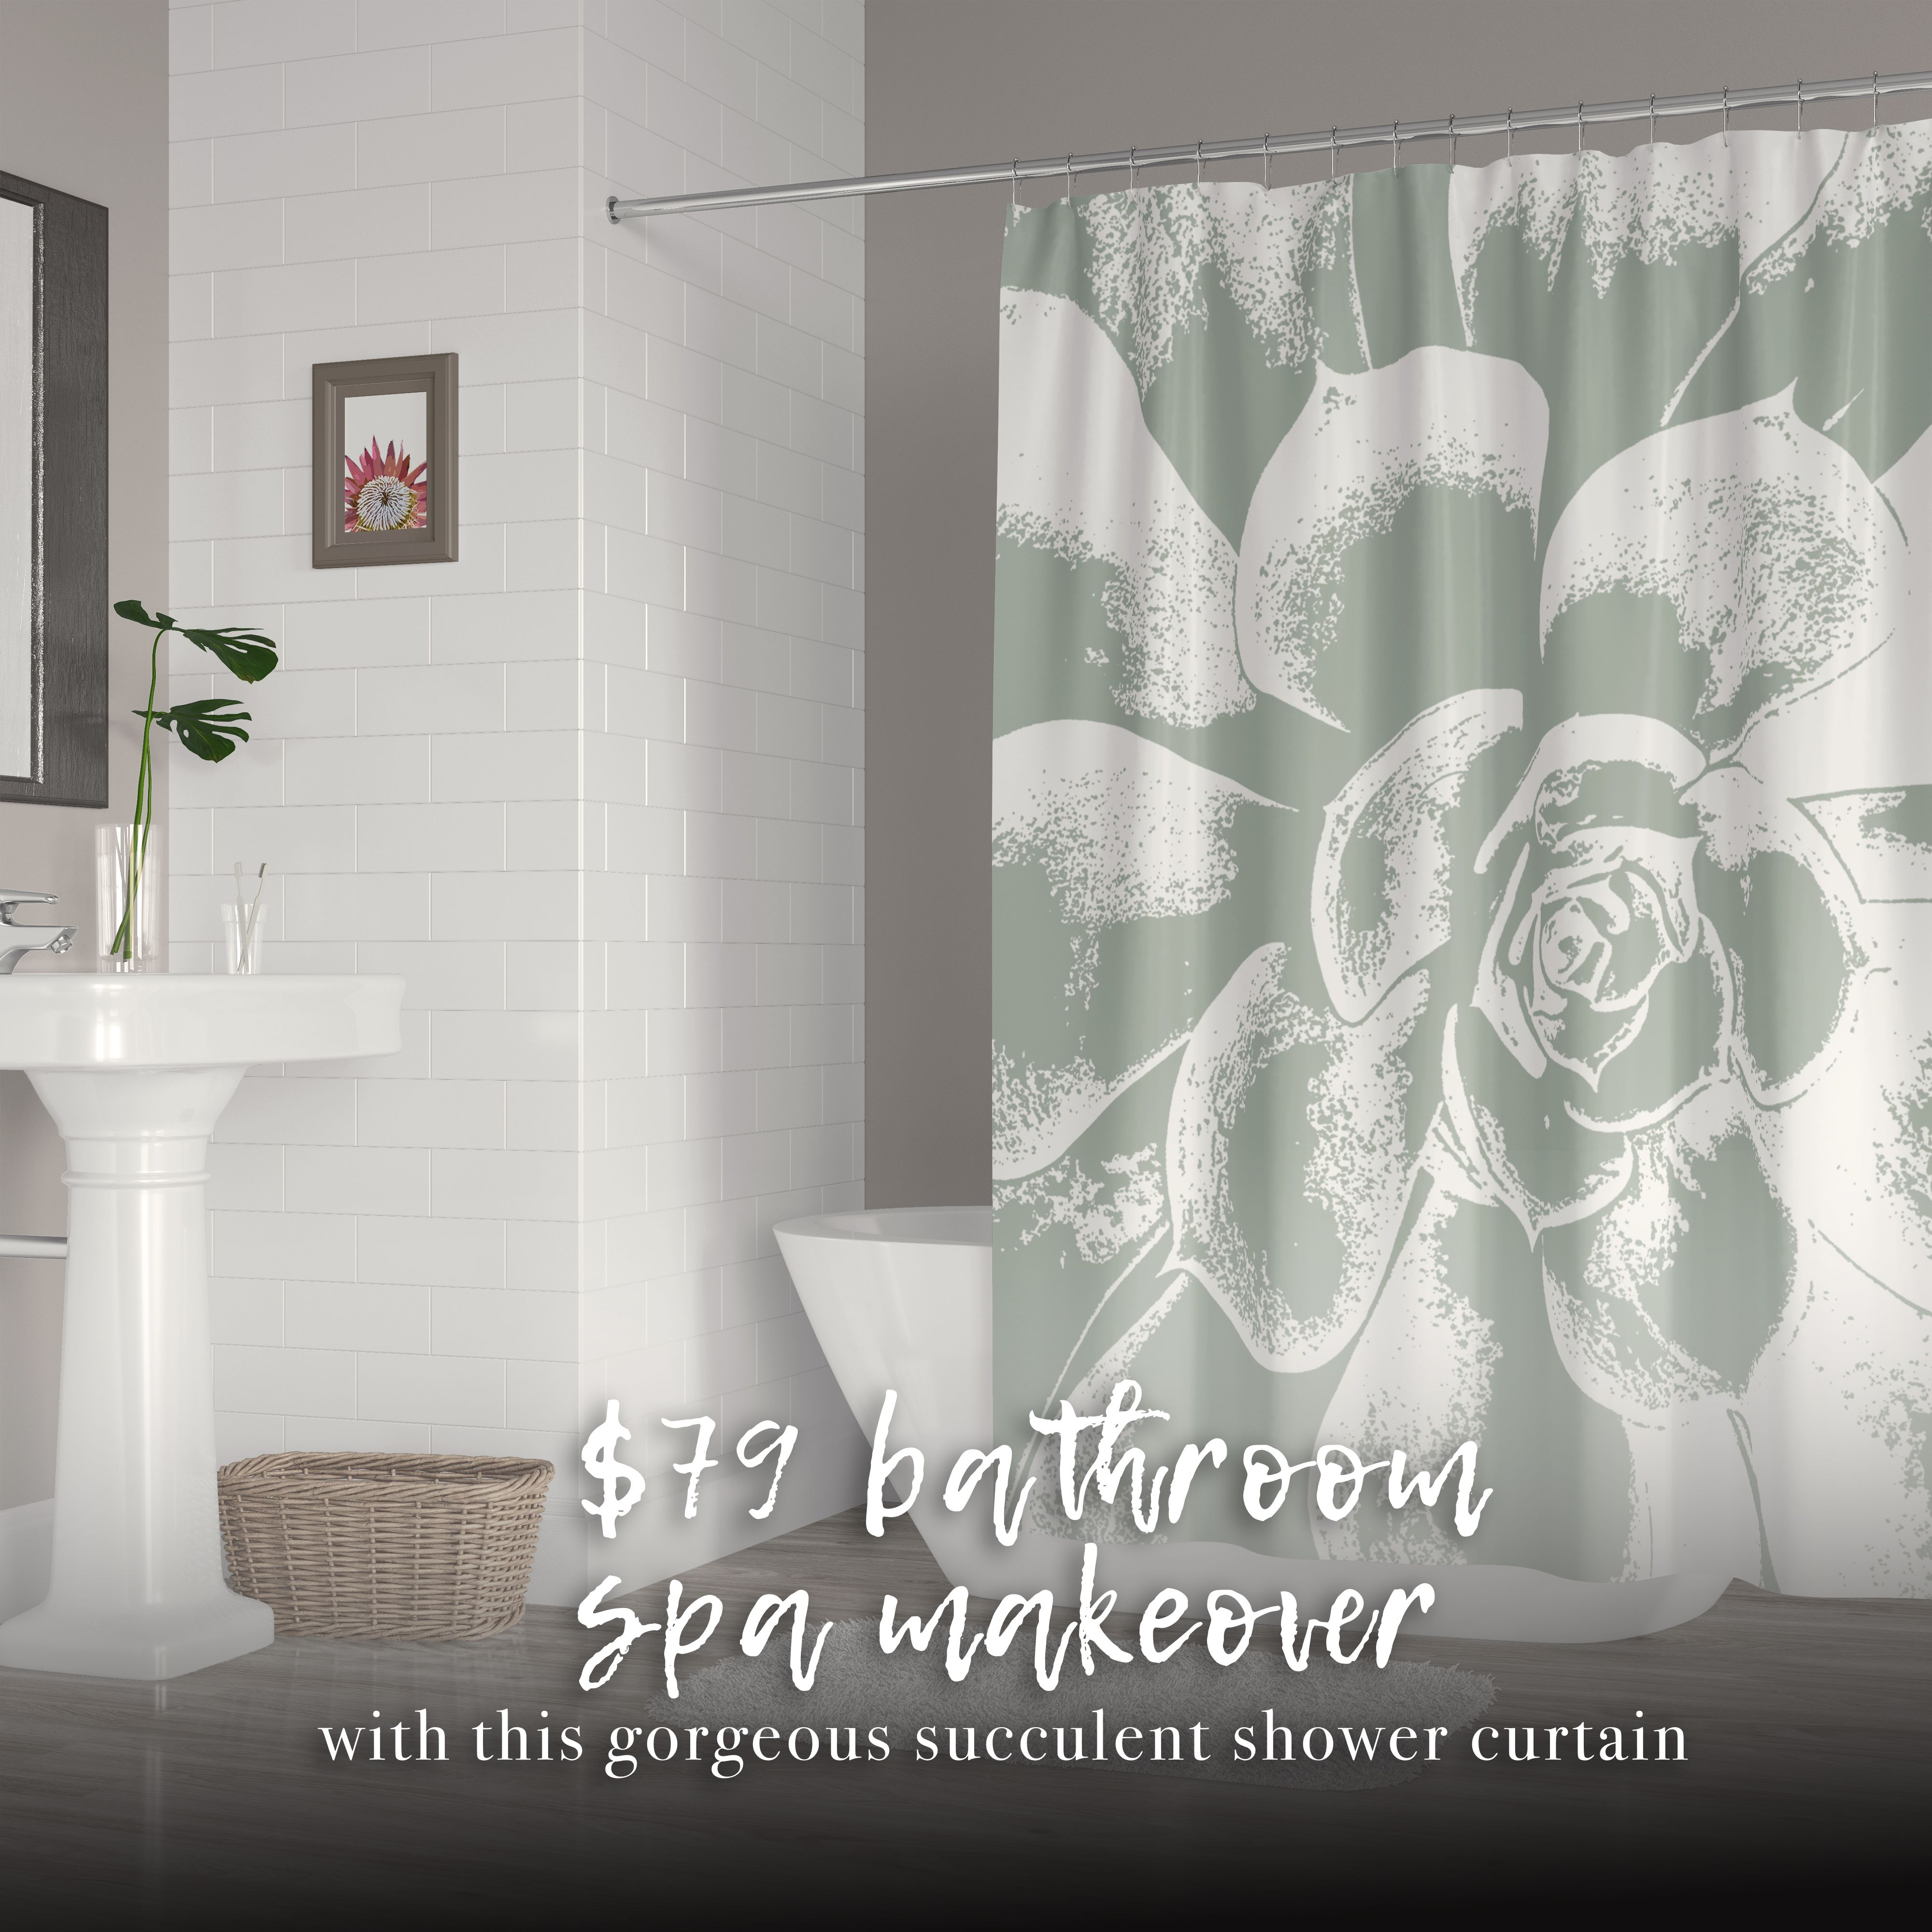 Large Green And White Succulent Shower Curtain Dream Bathrooms